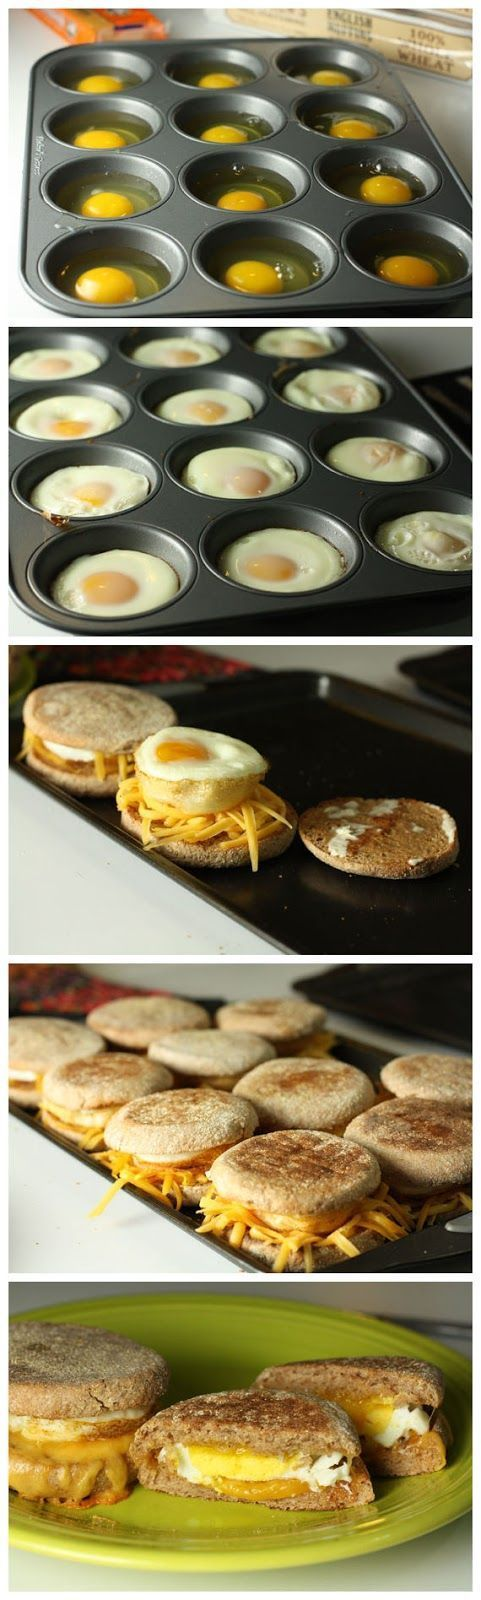 Easy Breakfast Sandwiches. Make the eggs in advance then in the mornings, toast an english muffin and add a slice of deli ham and cheese after warming the egg in the microwave.